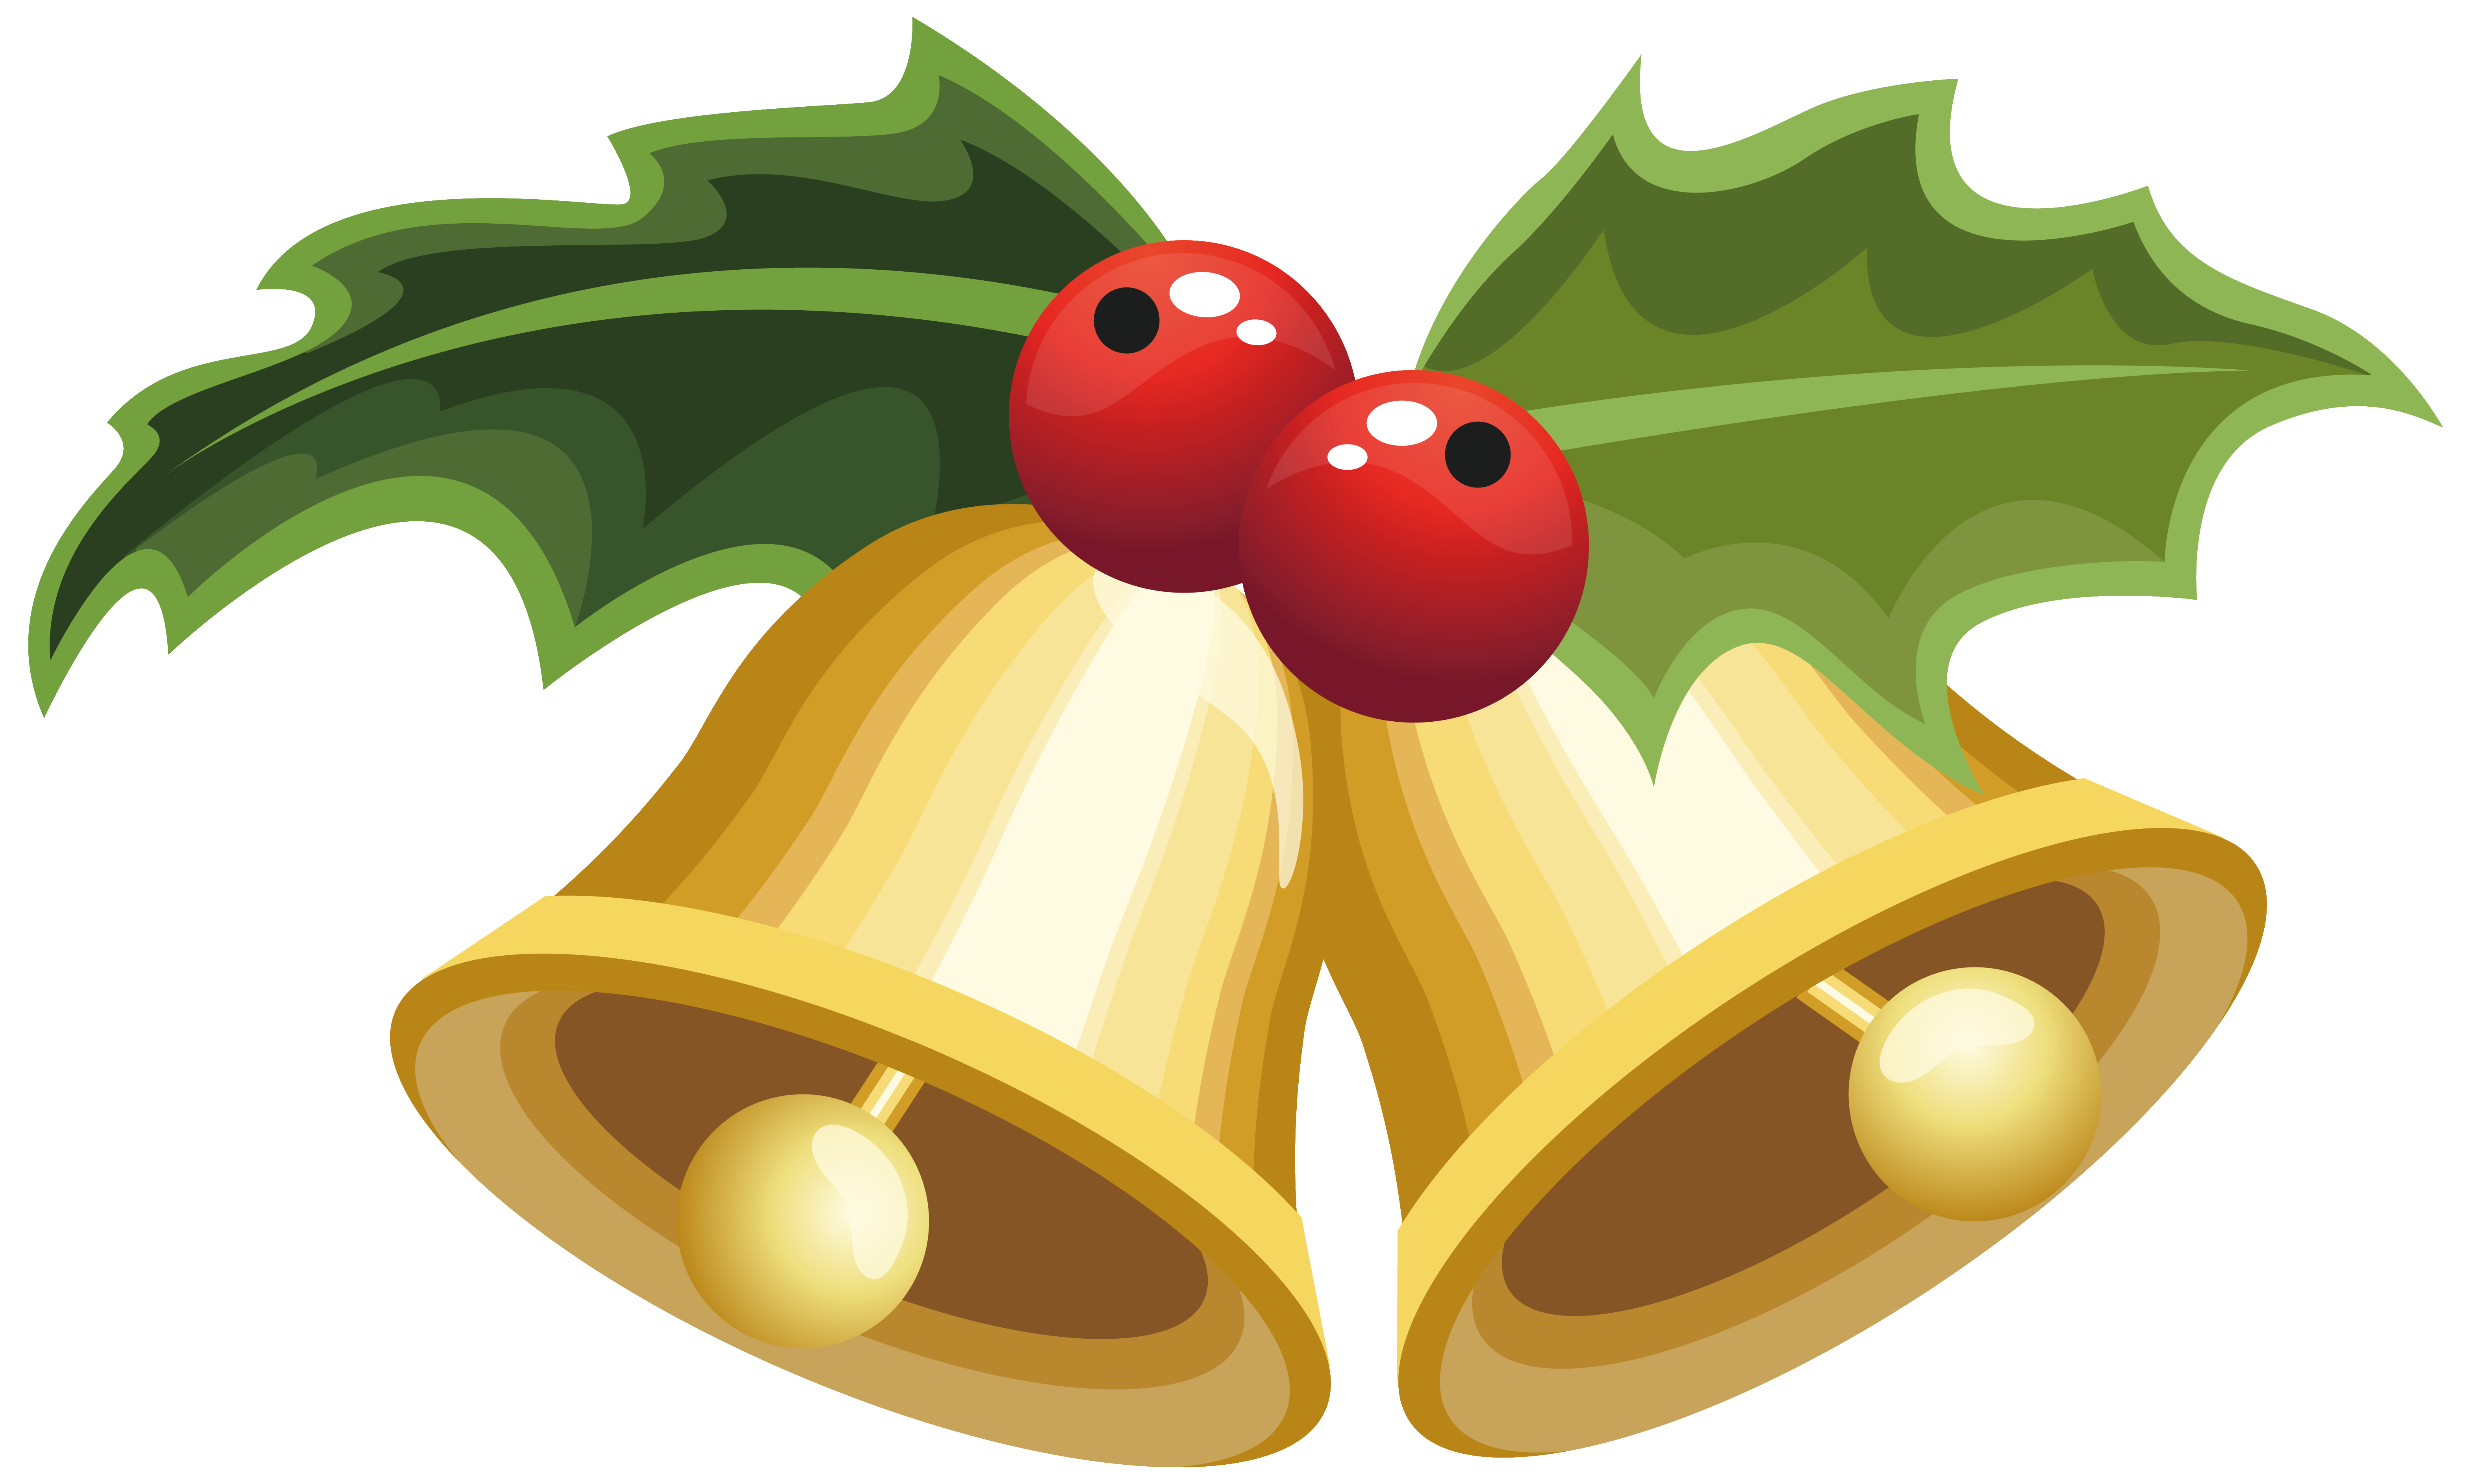 Feast clipart christmas eve dinner. Bells with mistletoe png